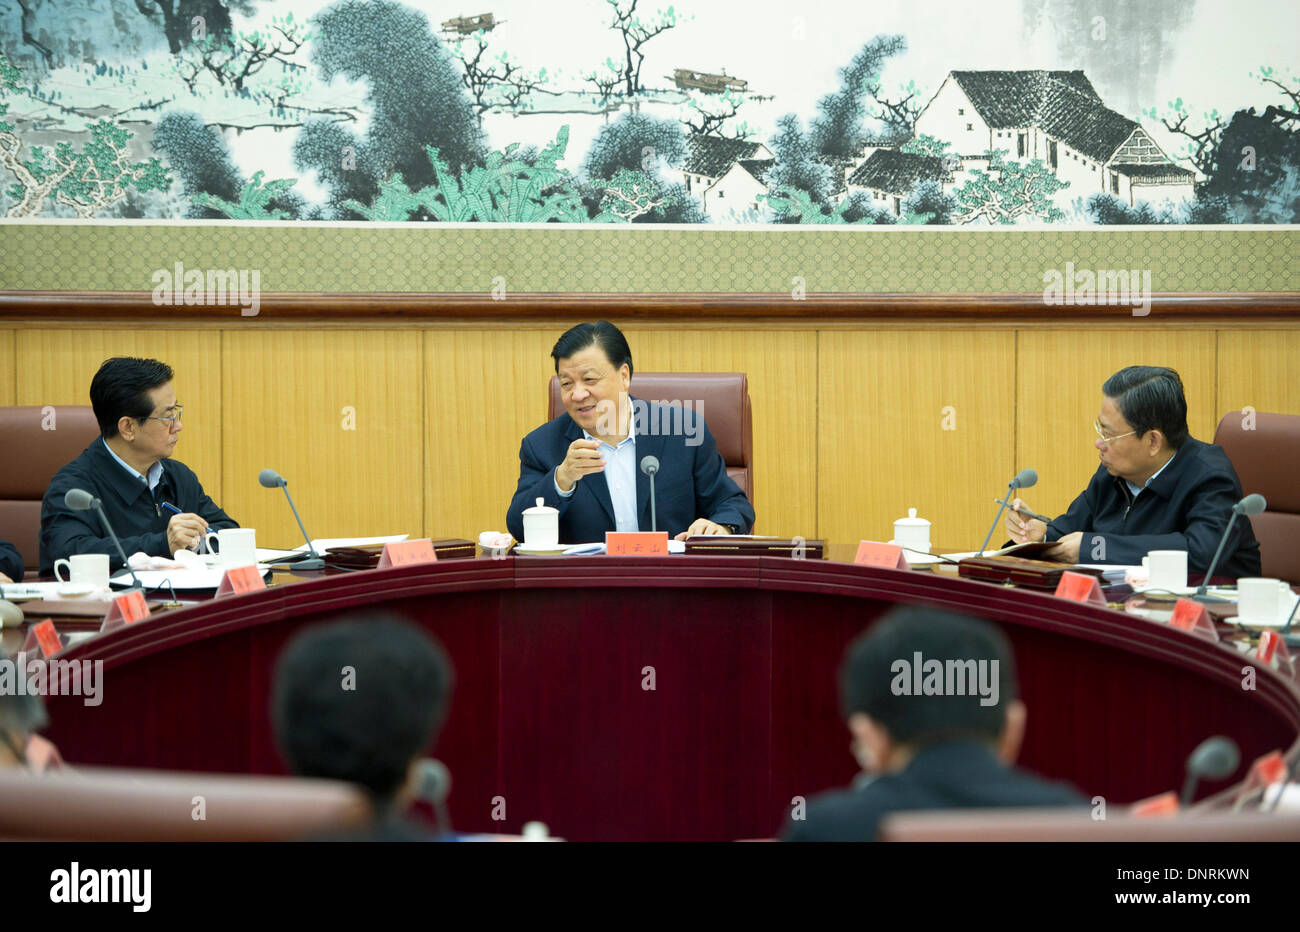 Beijing, China. 5th Jan, 2014. Liu Yunshan (C), a member of the Standing Committee of the Political Bureau of the Communist Party of China (CPC) Central Committee, presides over a meeting of the leading group of 'mass-line' campaign in Beijing, capital of China, Jan. 5, 2014. The one-year 'mass-line' campaign was launched in June last year to bridge gaps between CPC officials and members, and the general public, while cleaning up undesirable work styles such as formalism, bureaucracy, hedonism and extravagance. © Xie Huanchi/Xinhua/Alamy Live News - Stock Image